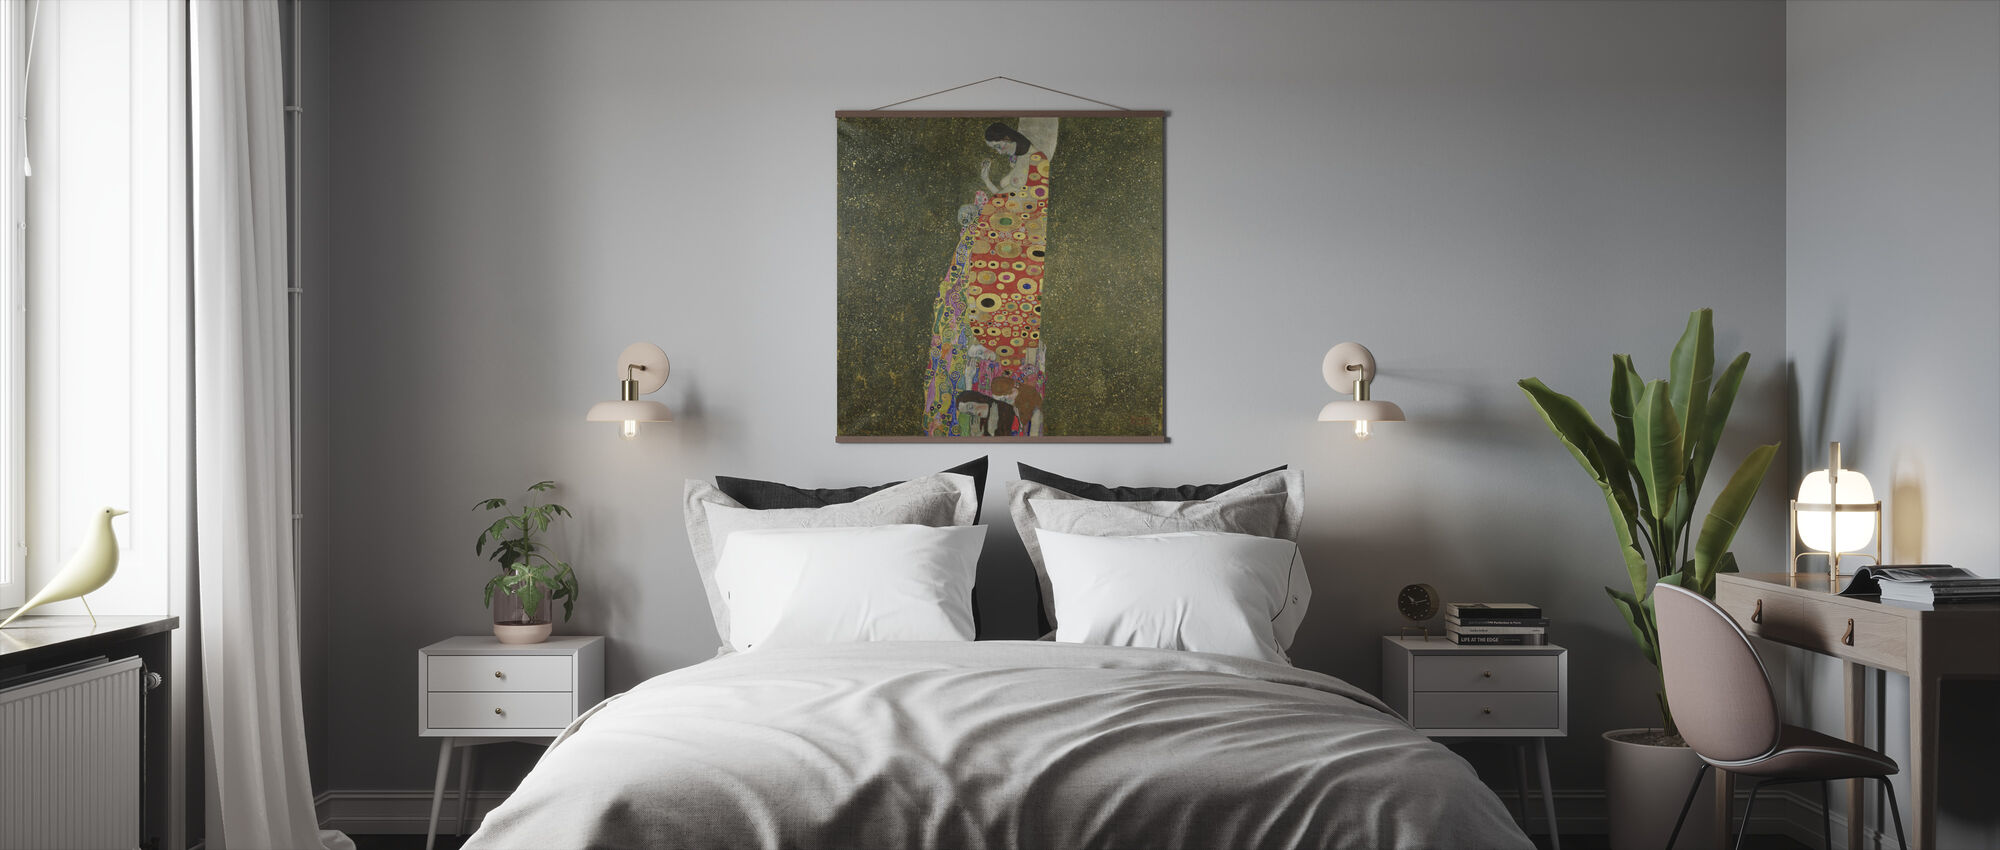 Klimt, Gustav - Hope II - Poster - Bedroom